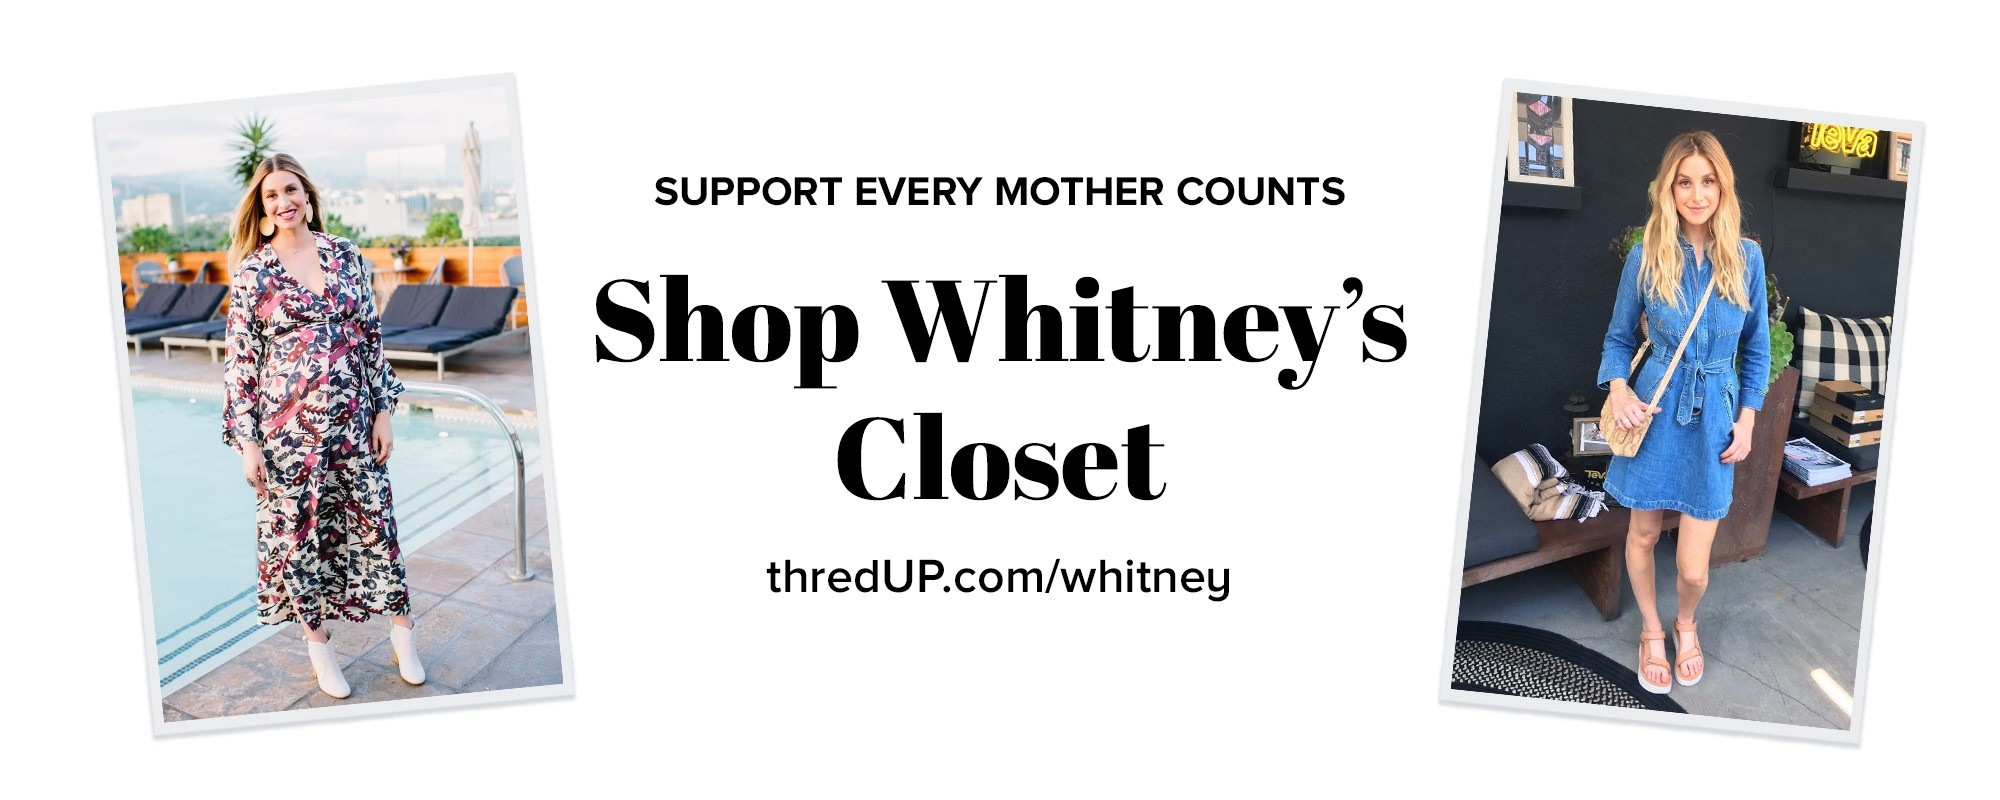 Whitney Port Sells Her Clothing On Thredup For A Cause